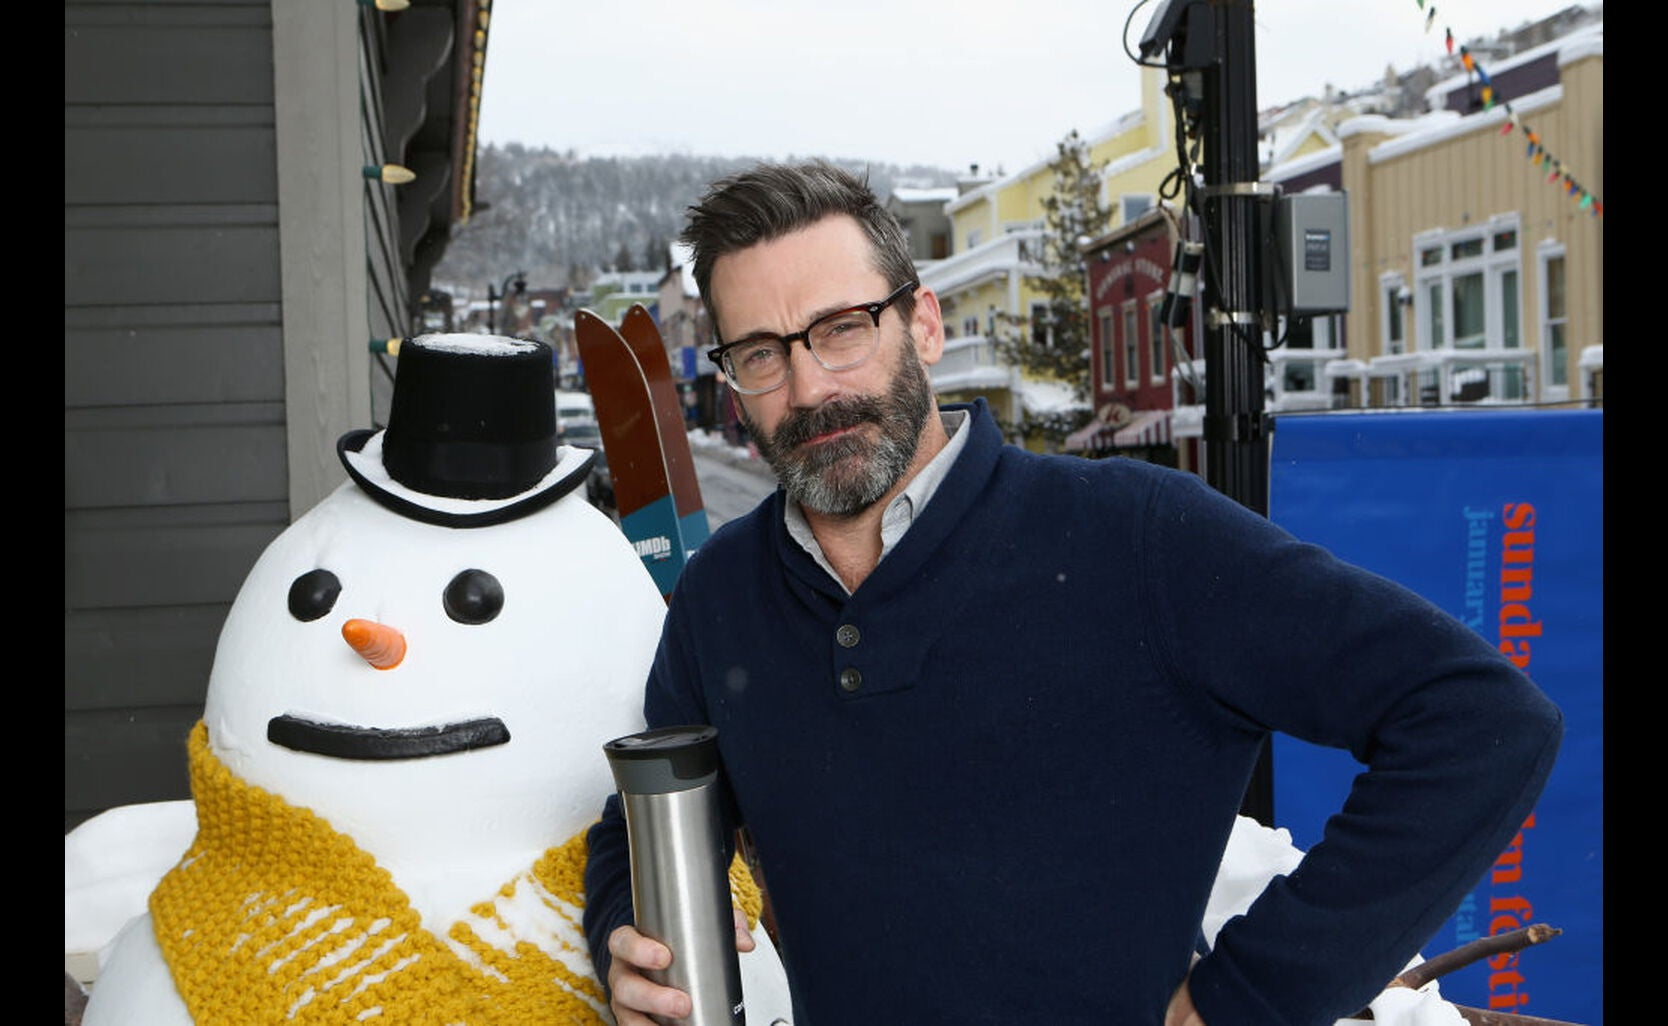 actor Jon Hamm at Sundance 2018